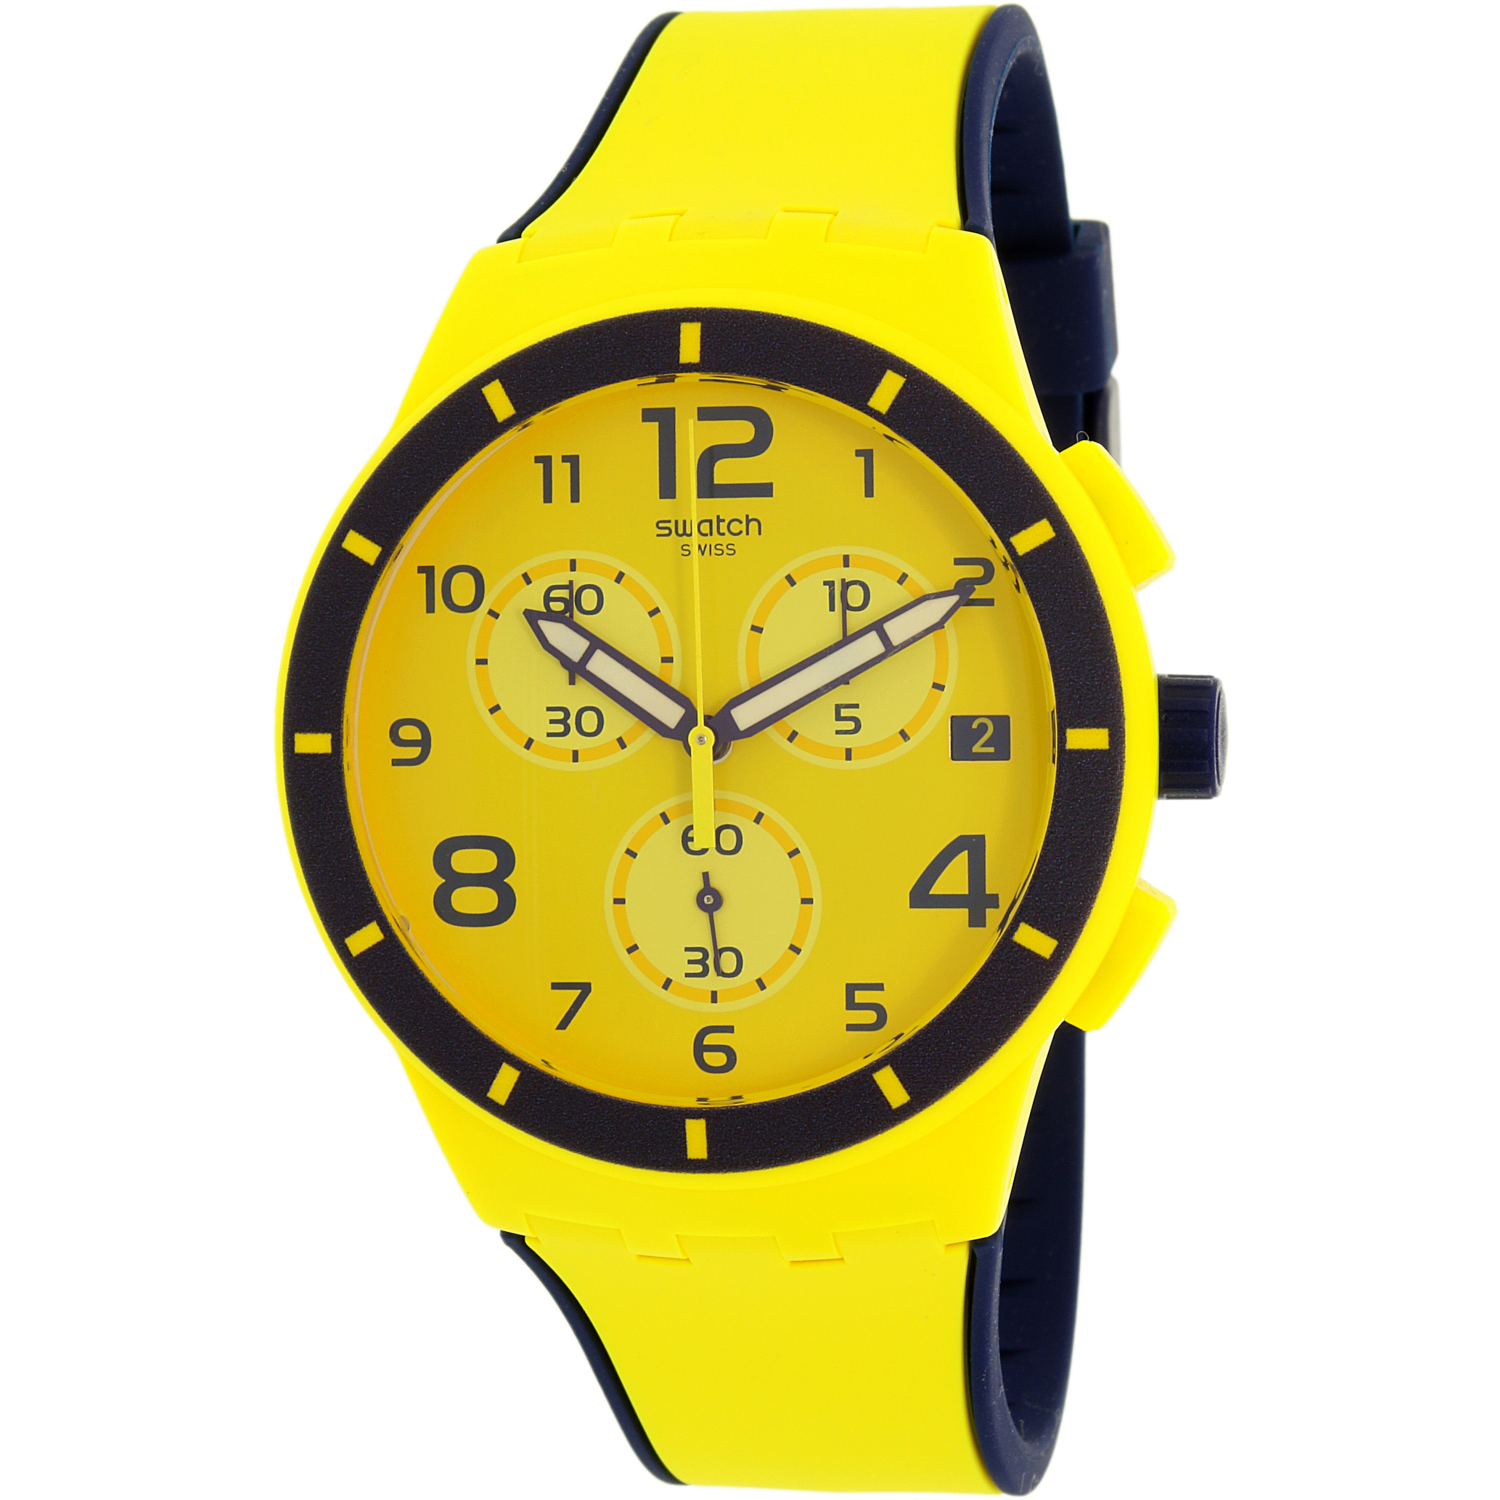 chrono online the watch discountshop swatch watches com switch